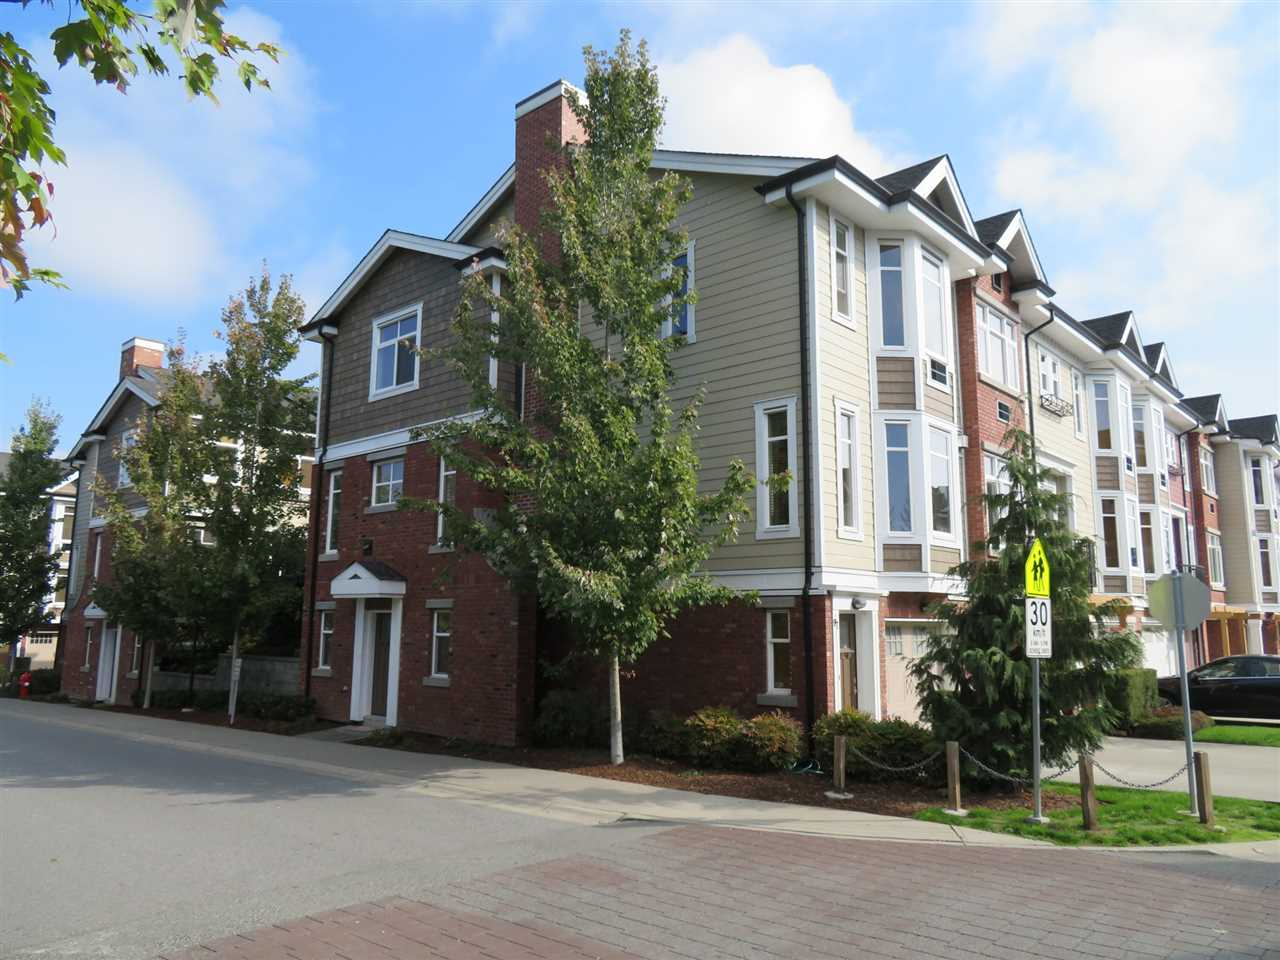 Buliding: 20738 84 Avenue, Langley, BC